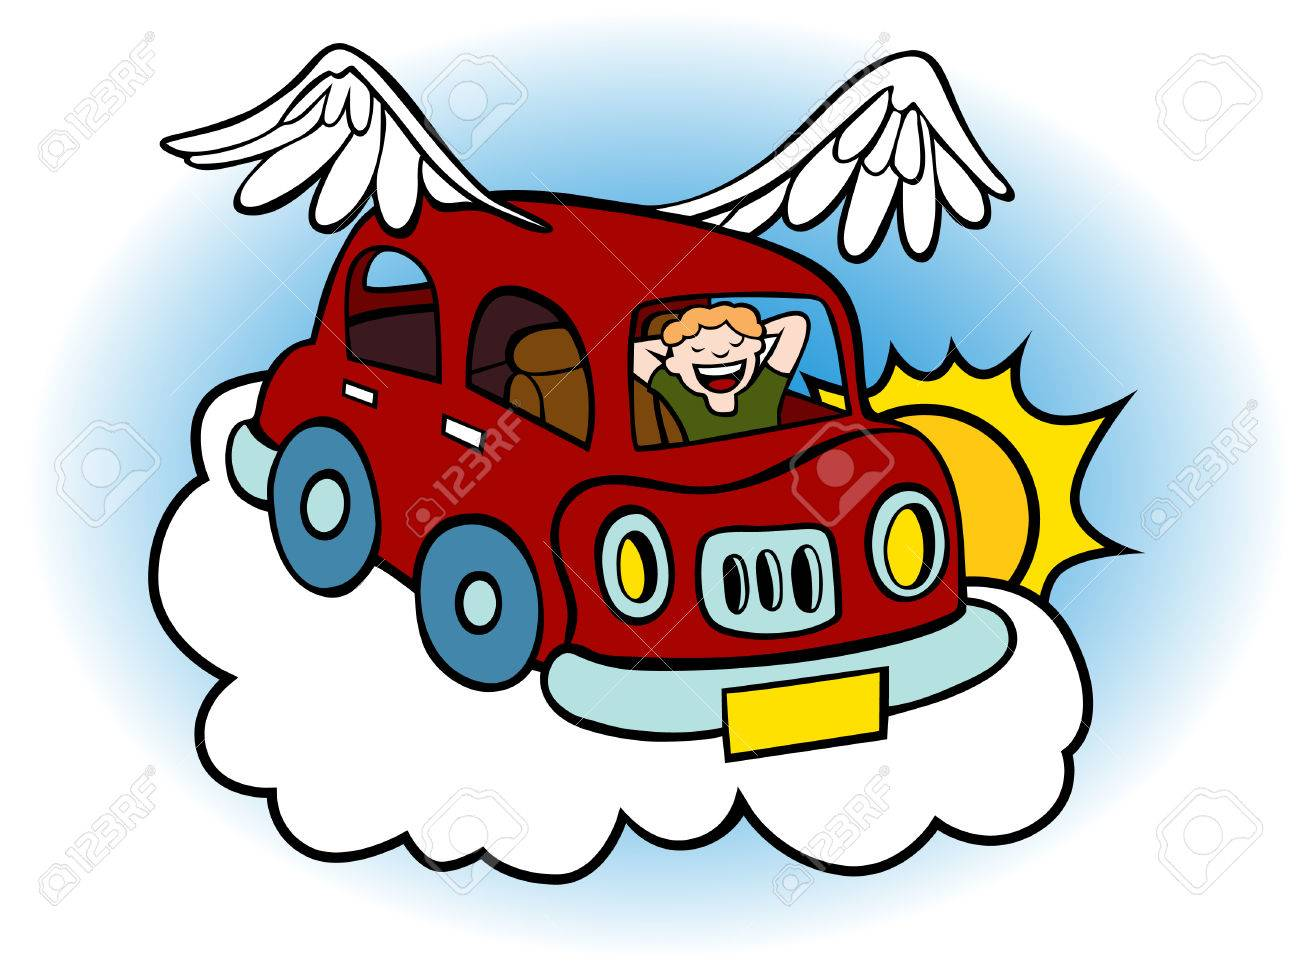 Cartoon of a flying car with wings floating above the clouds..